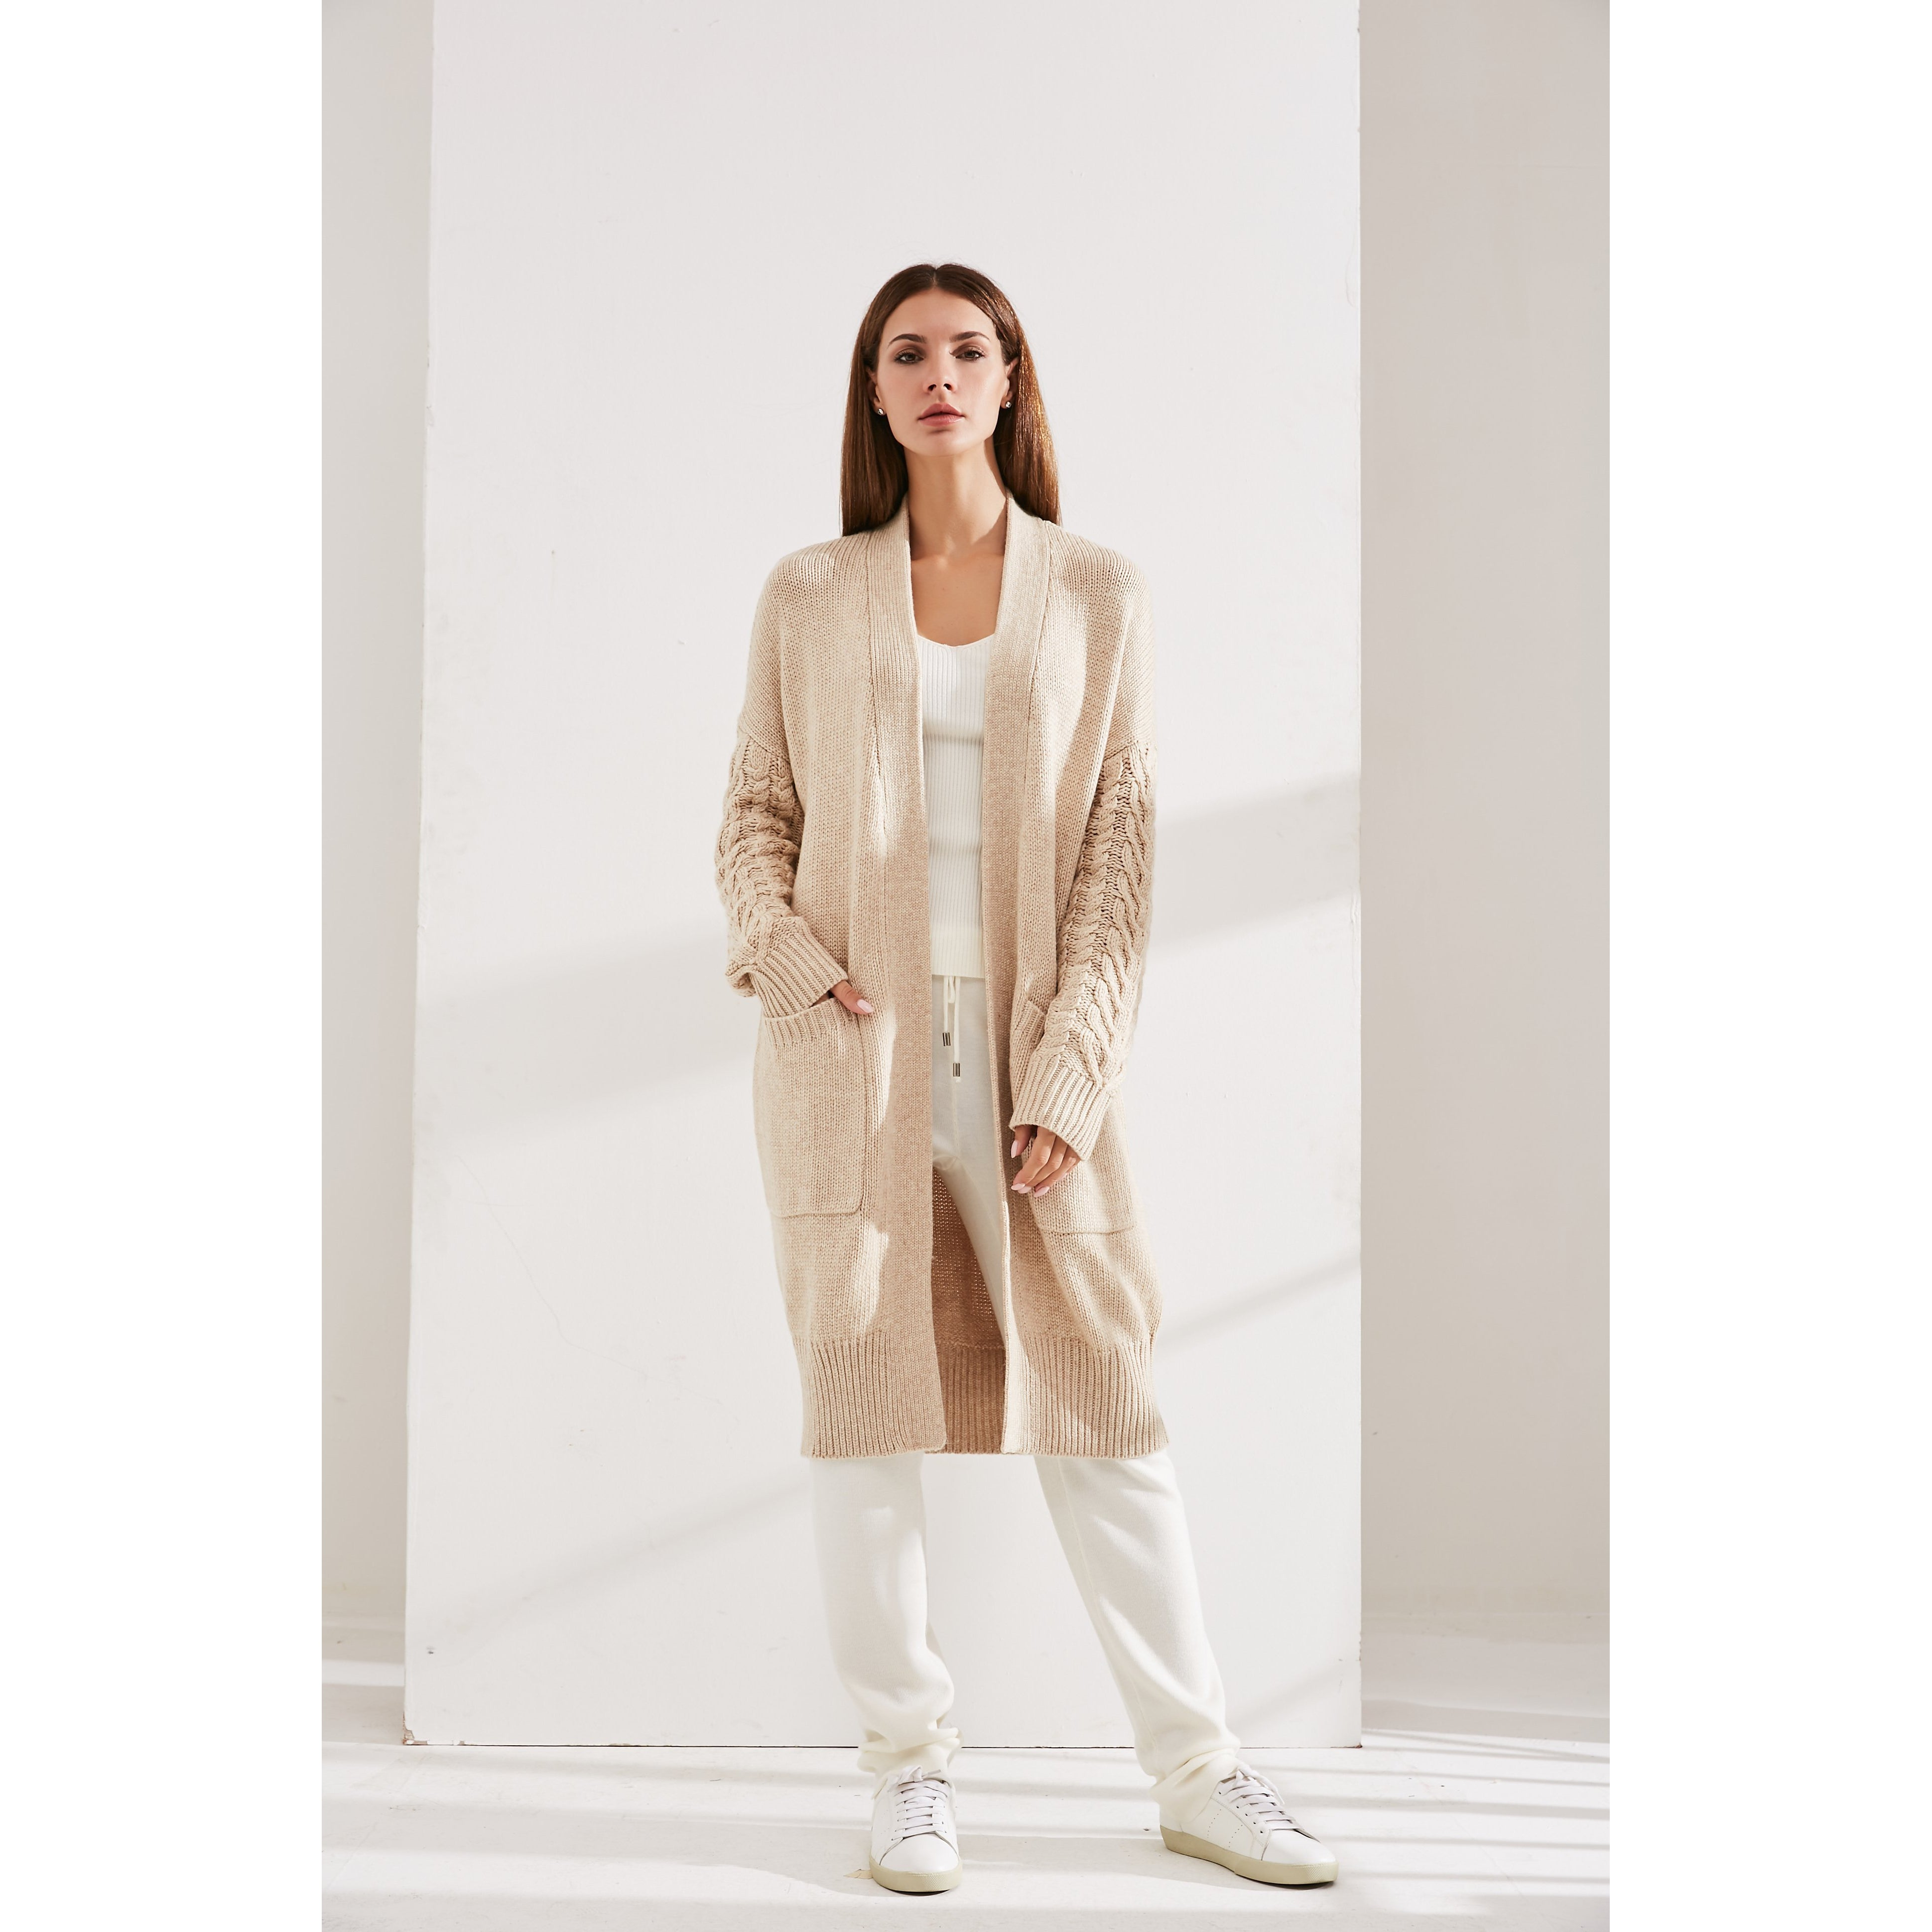 Beige Cashmere Cardigan With Knitted Sleeves-INA VOKICH-HOUSE of BOTTA